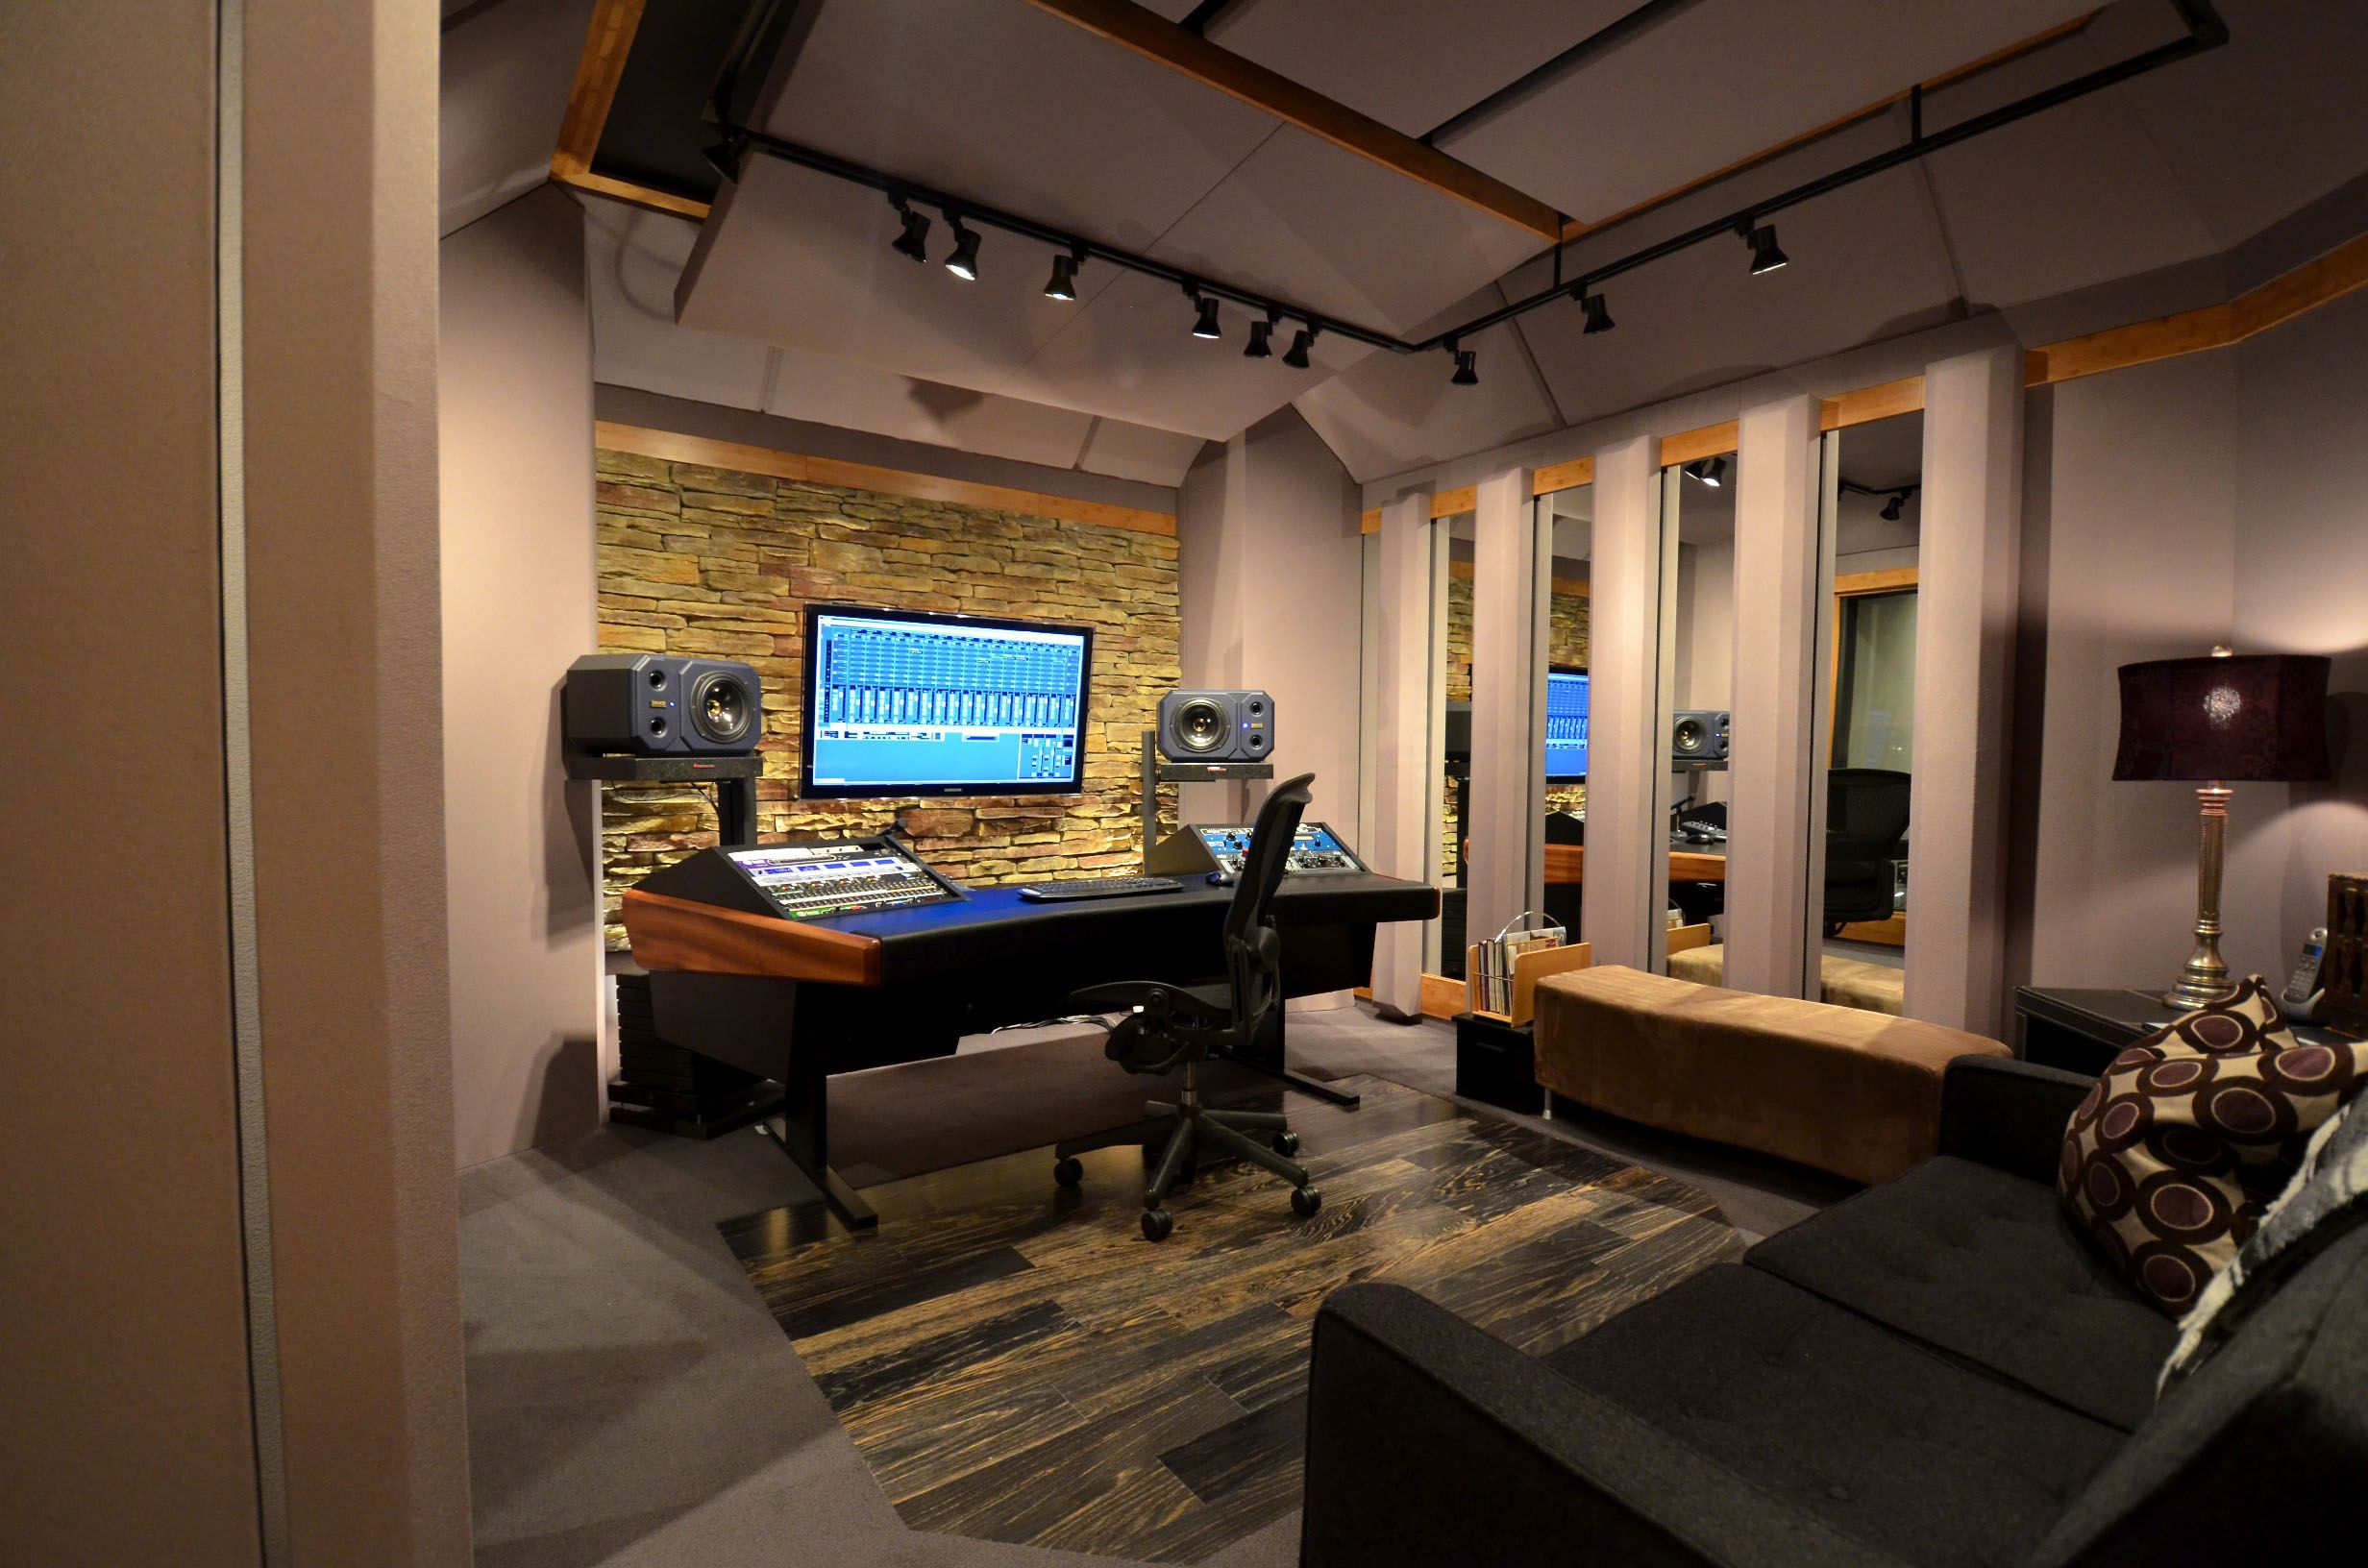 Audio Room Equipment Of Sound Recording And Smart Layout Creative Design Room Ab Office